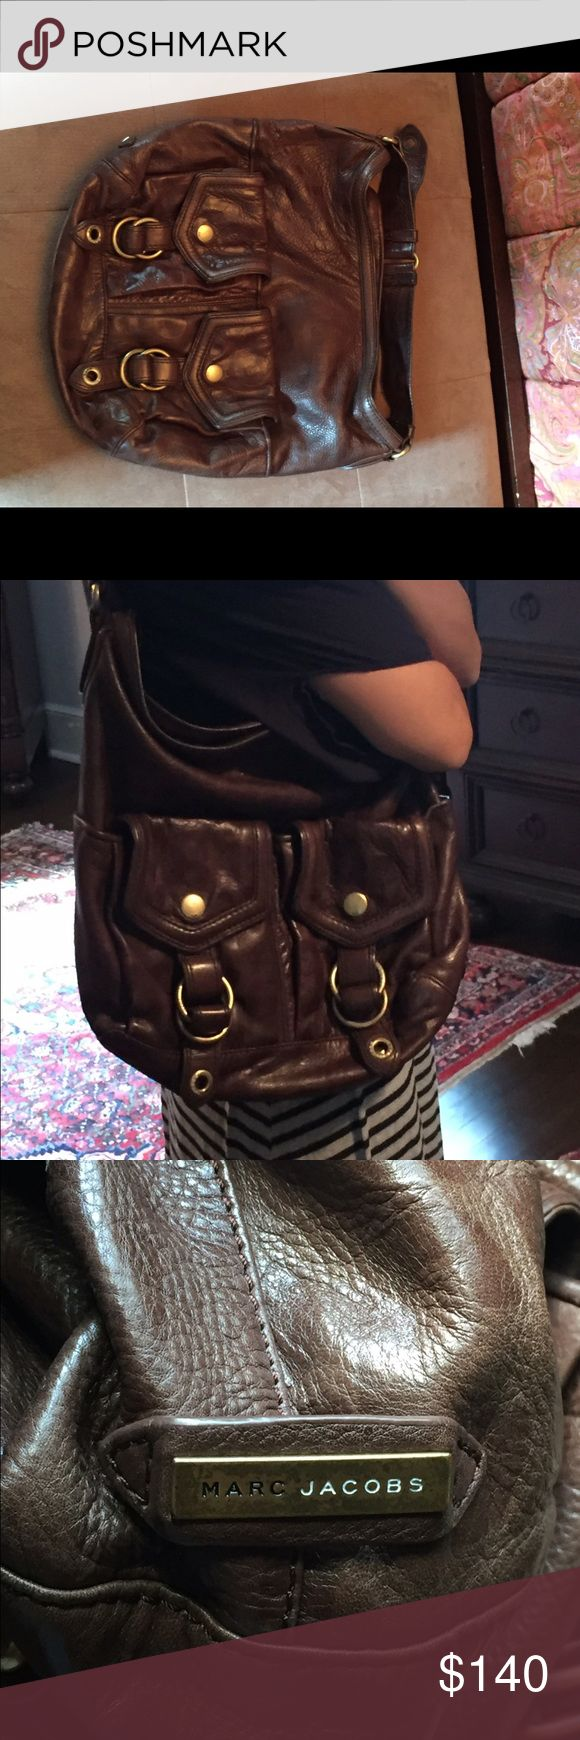 Brown hobo style Marc Jacobs bag Brown hobo style Marc by Marc Jacobs handbag. Gentle wear, but leather has gotten better looking than when brand new. Marc by Marc Jacobs Bags Hobos